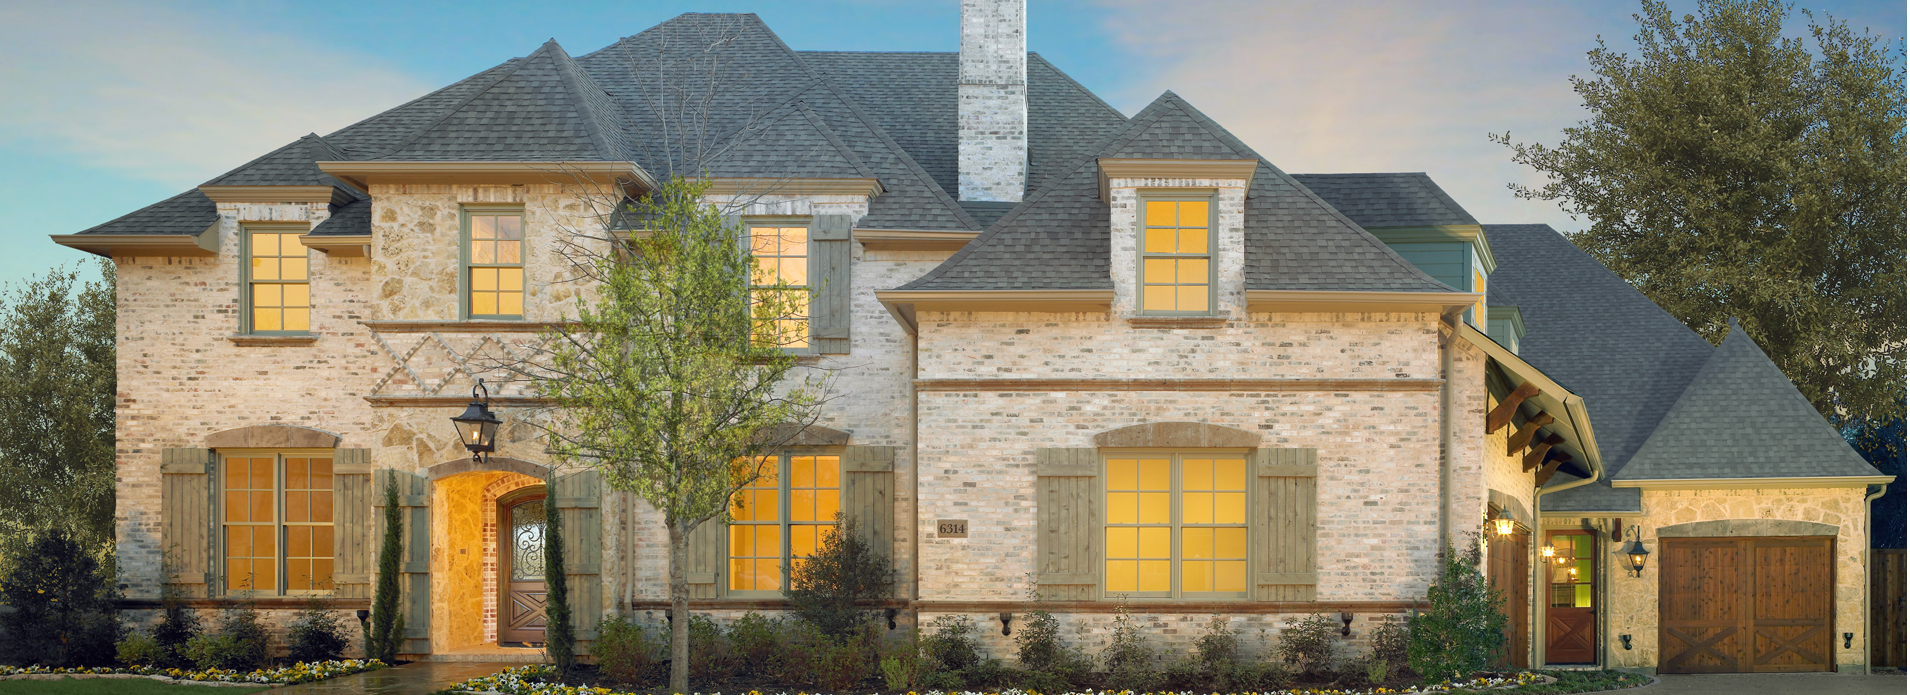 Dallas Custom Home Builders Call 972 380 2650 North Luxury Homes